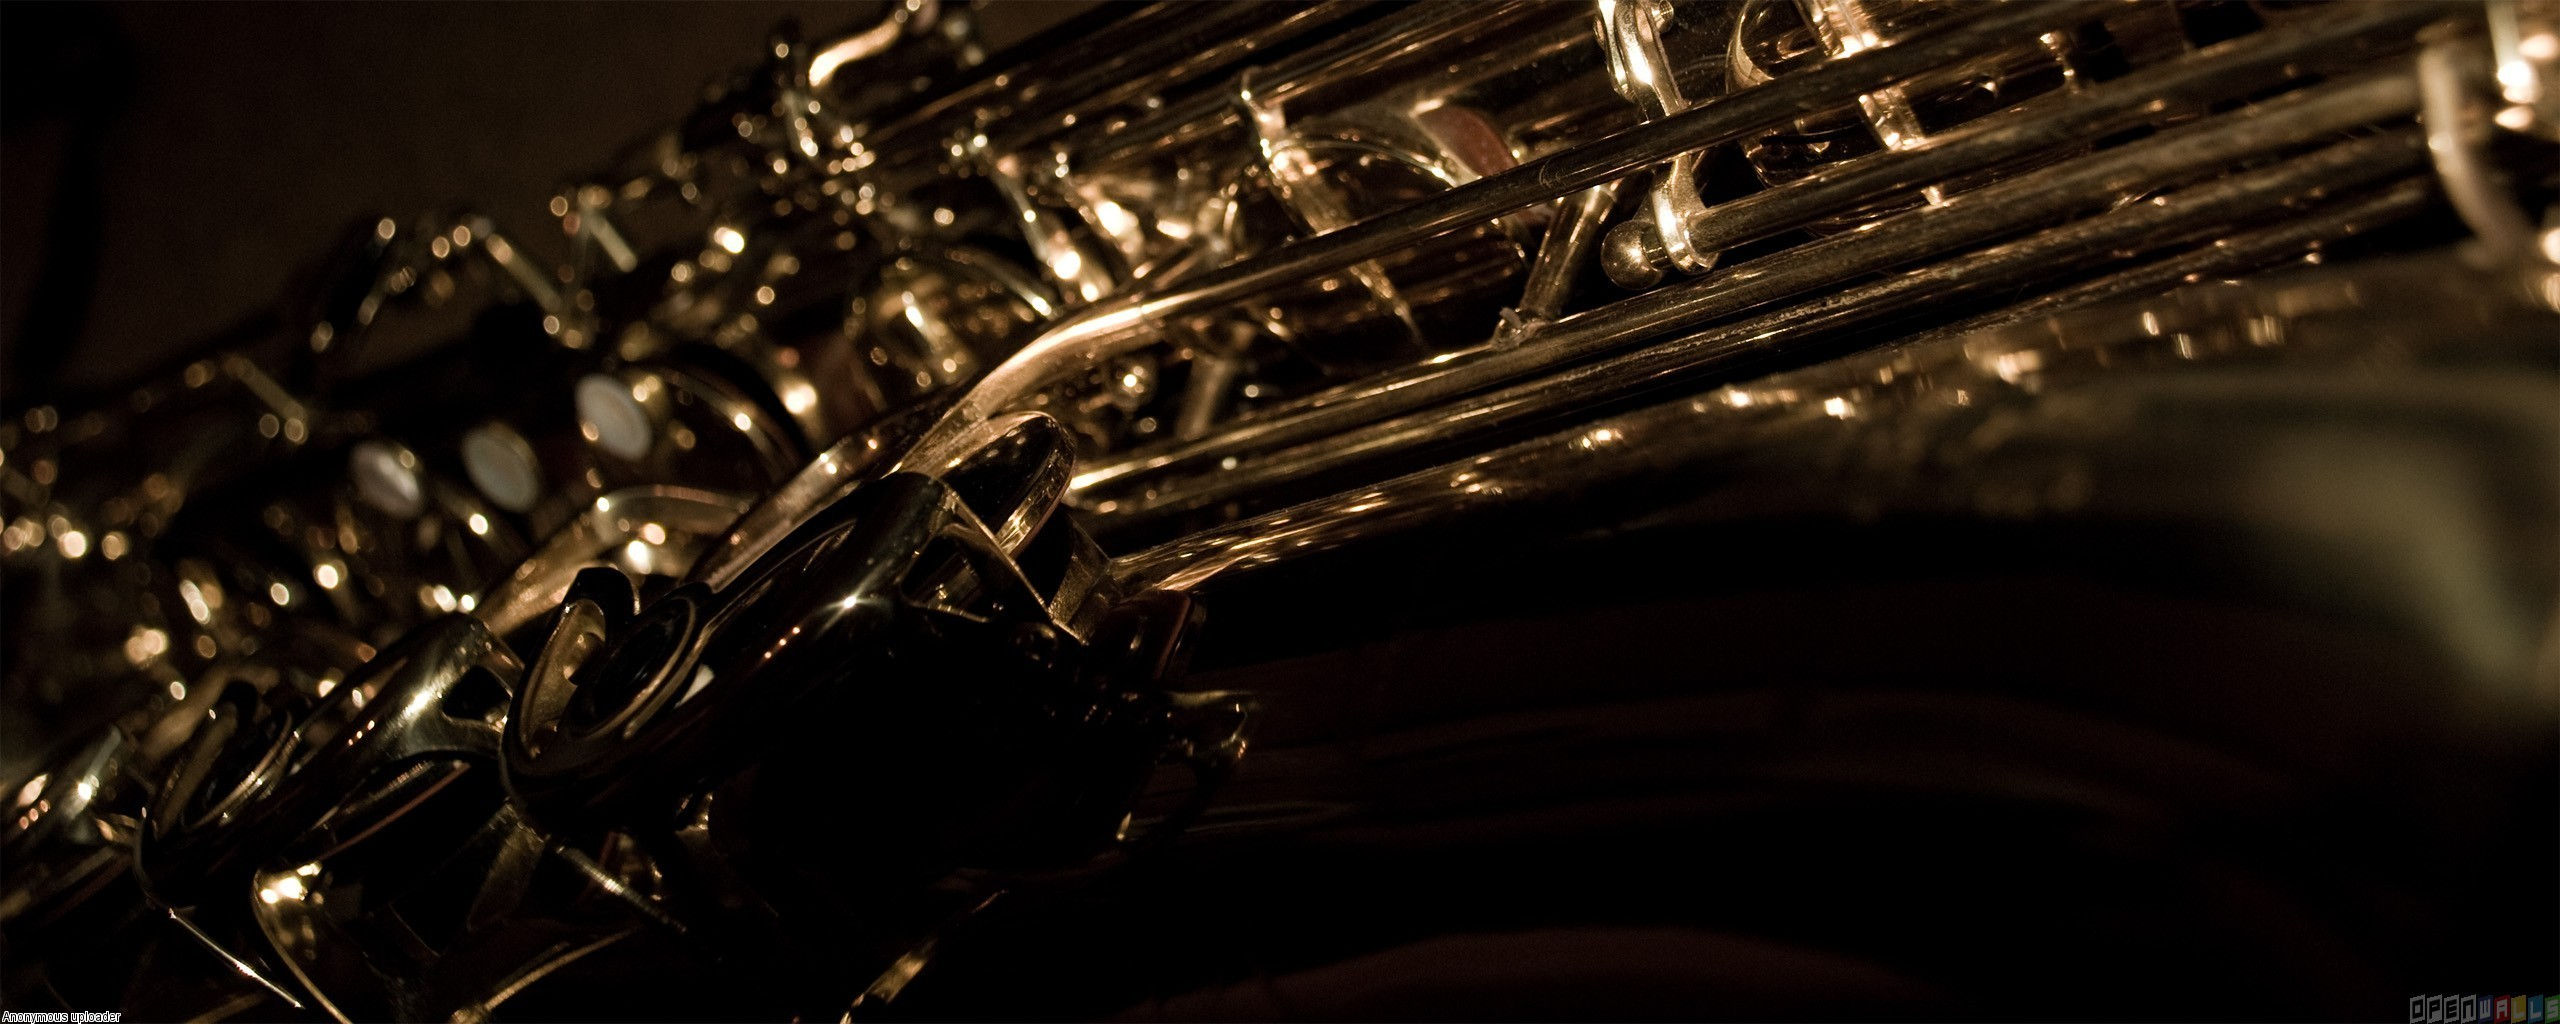 Saxophone wallpaper 7873 2560x1024